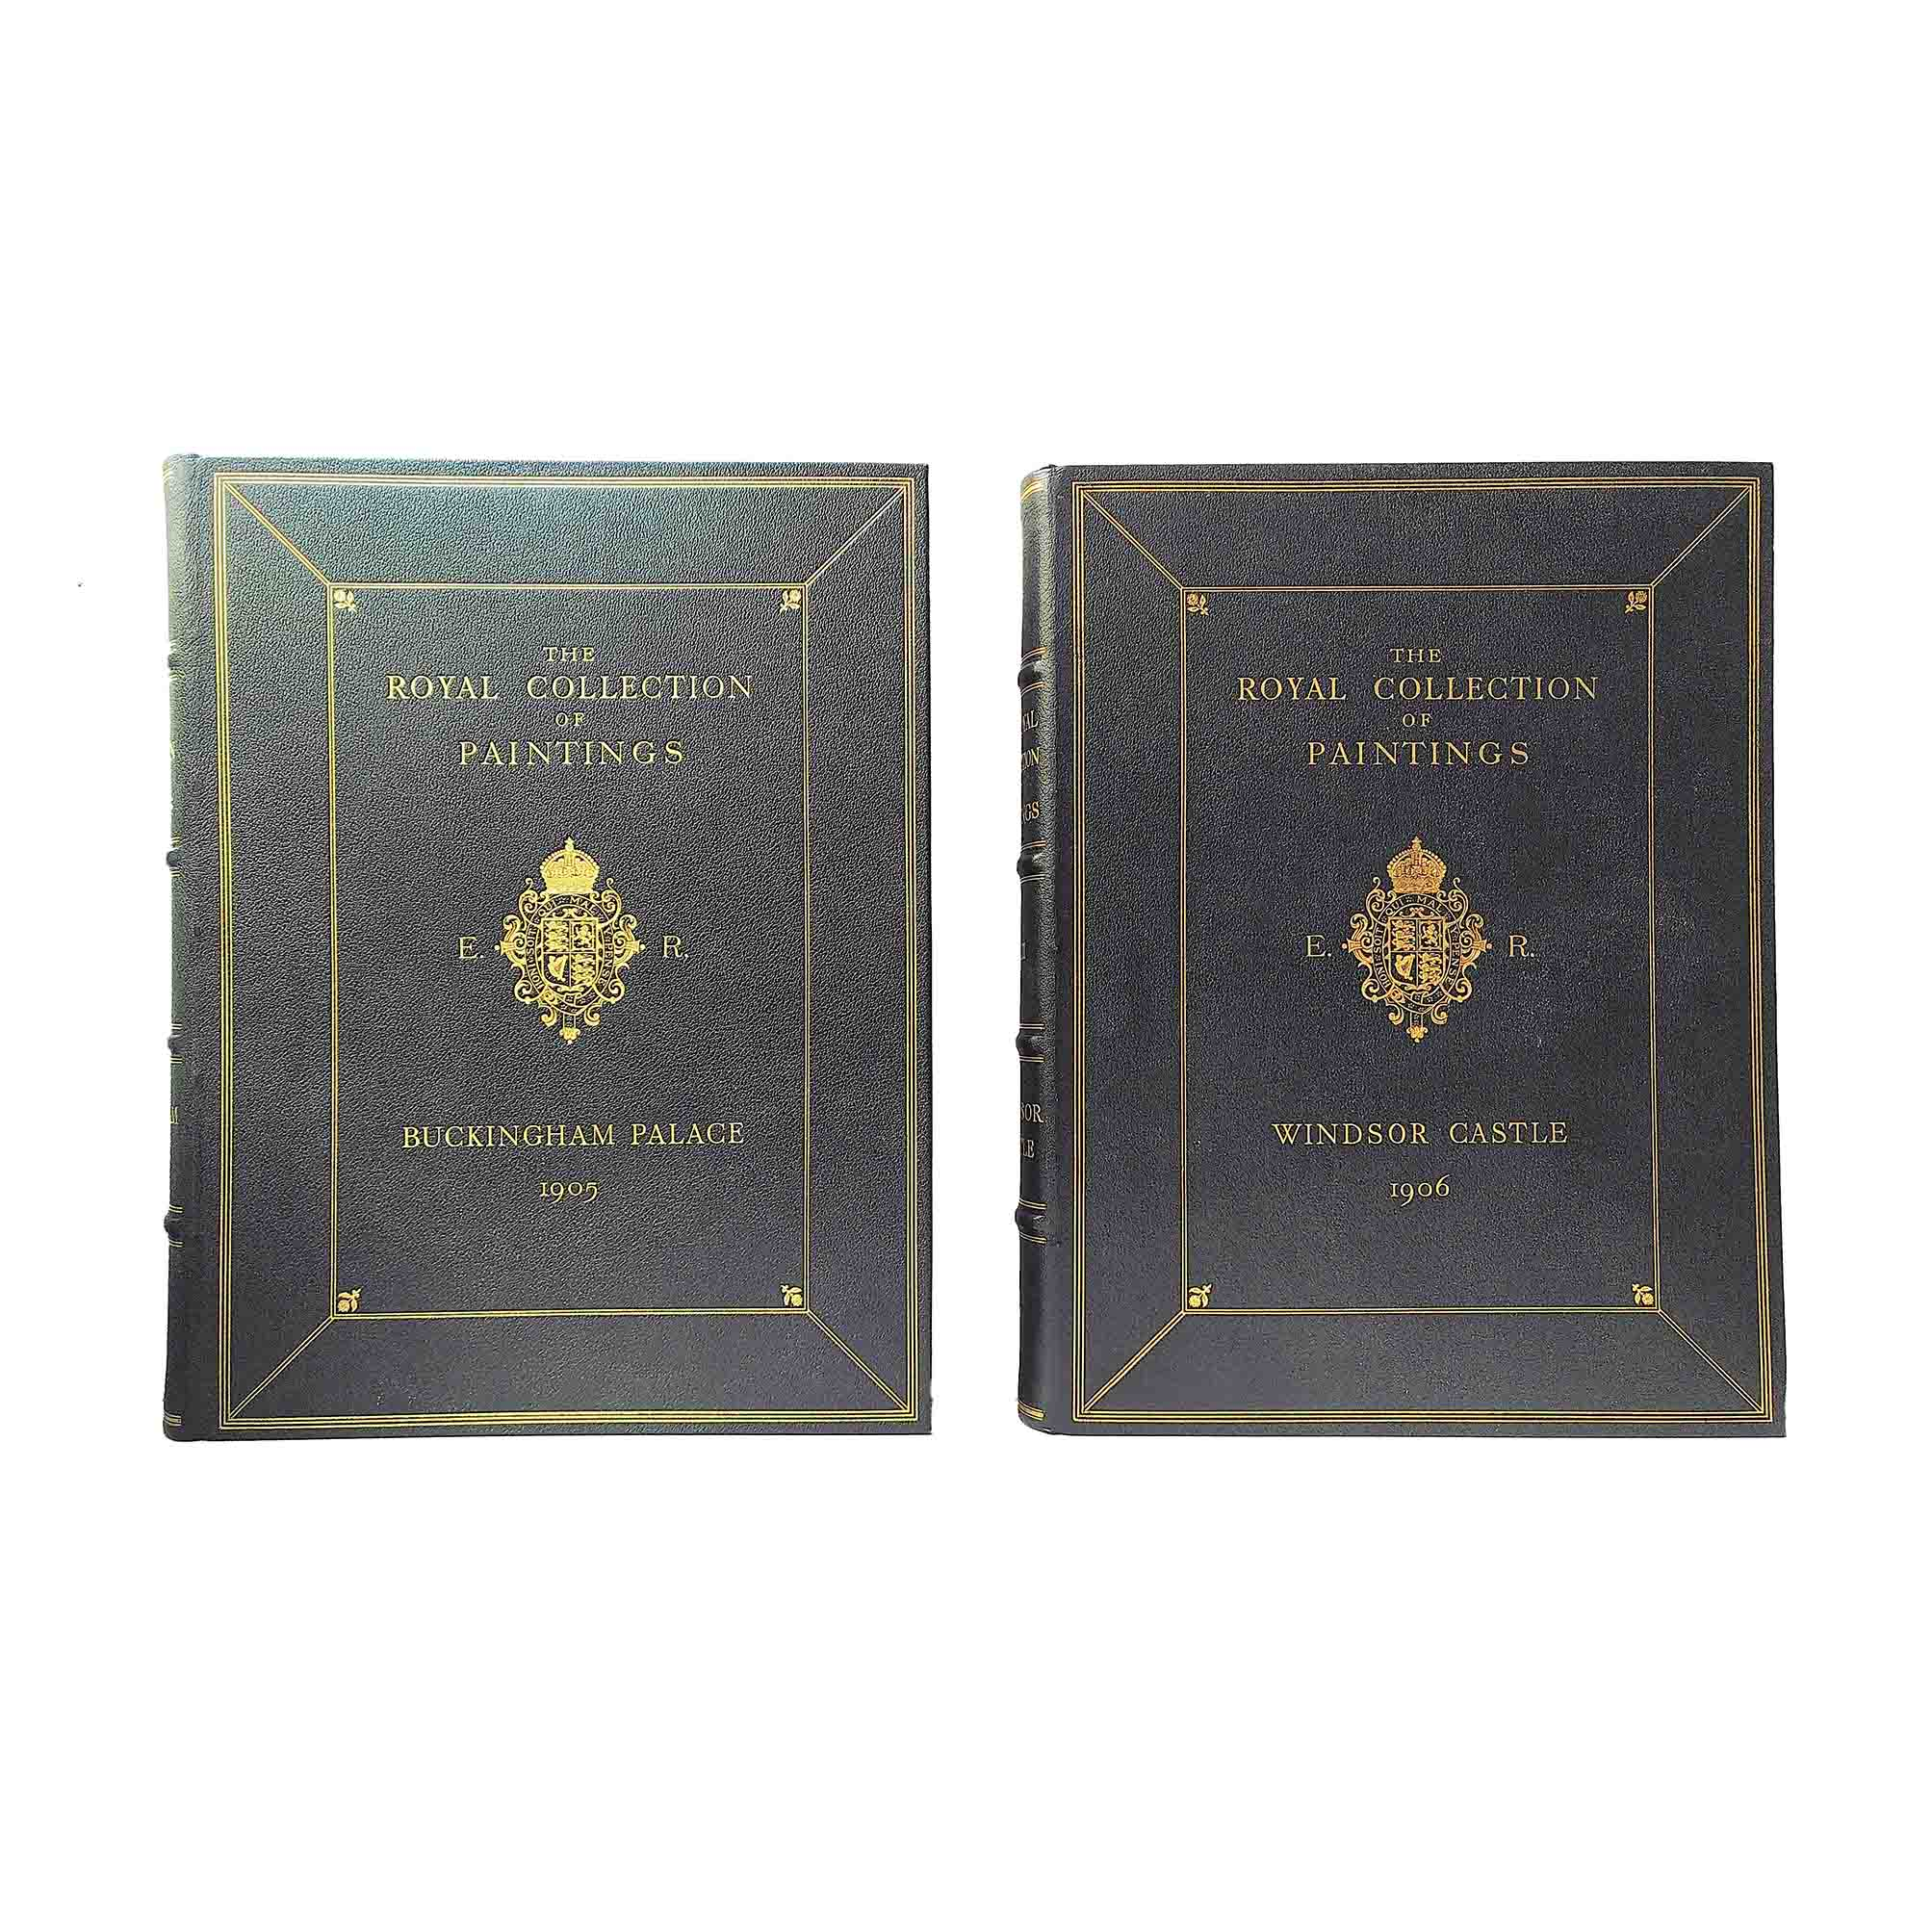 6007 Cust Royal Collection Paintings 1905 1906 Covers A N